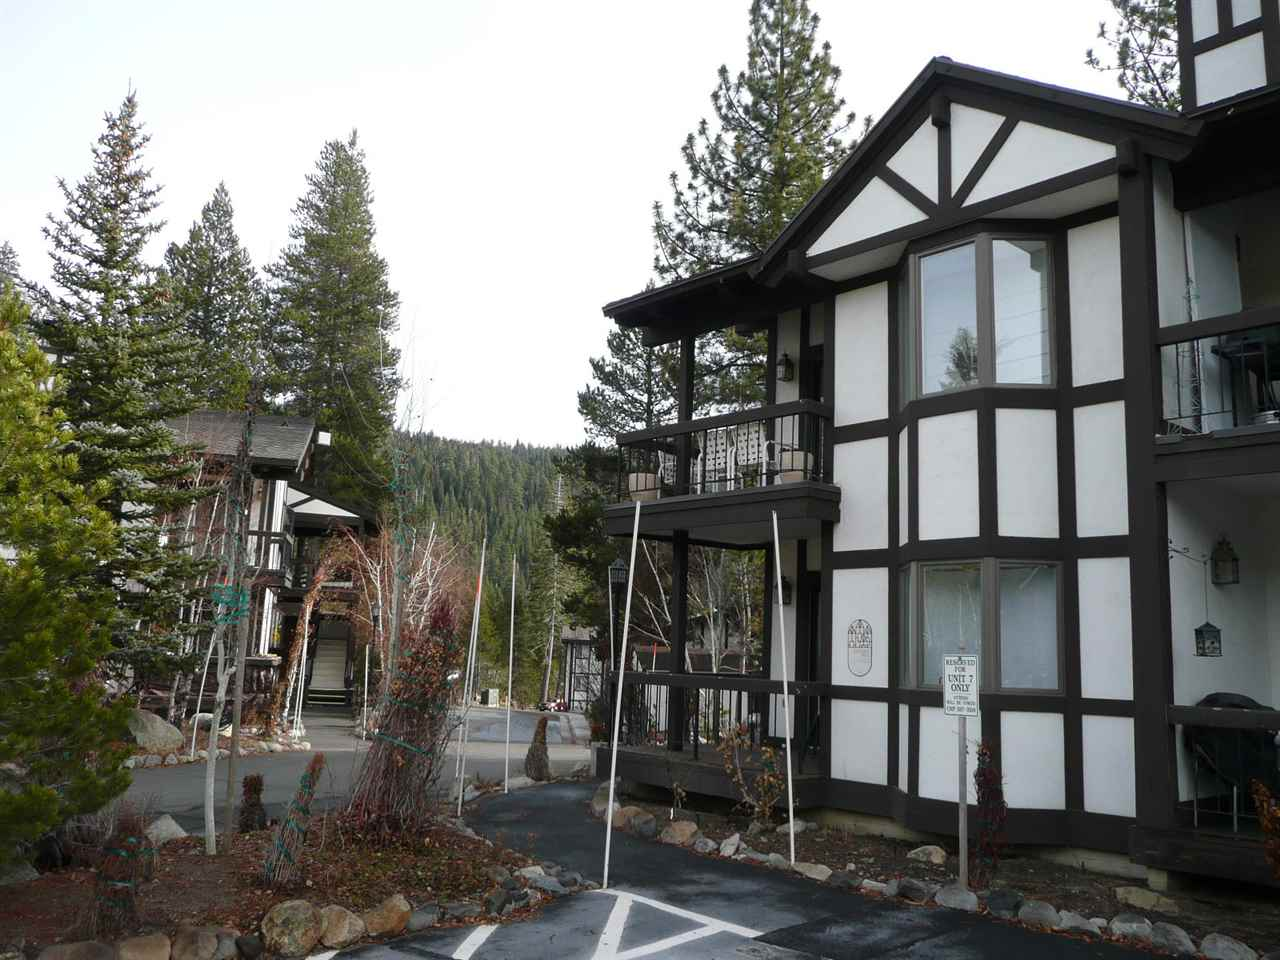 227 Squaw Valley Road, Olympic Valley, CA 96146